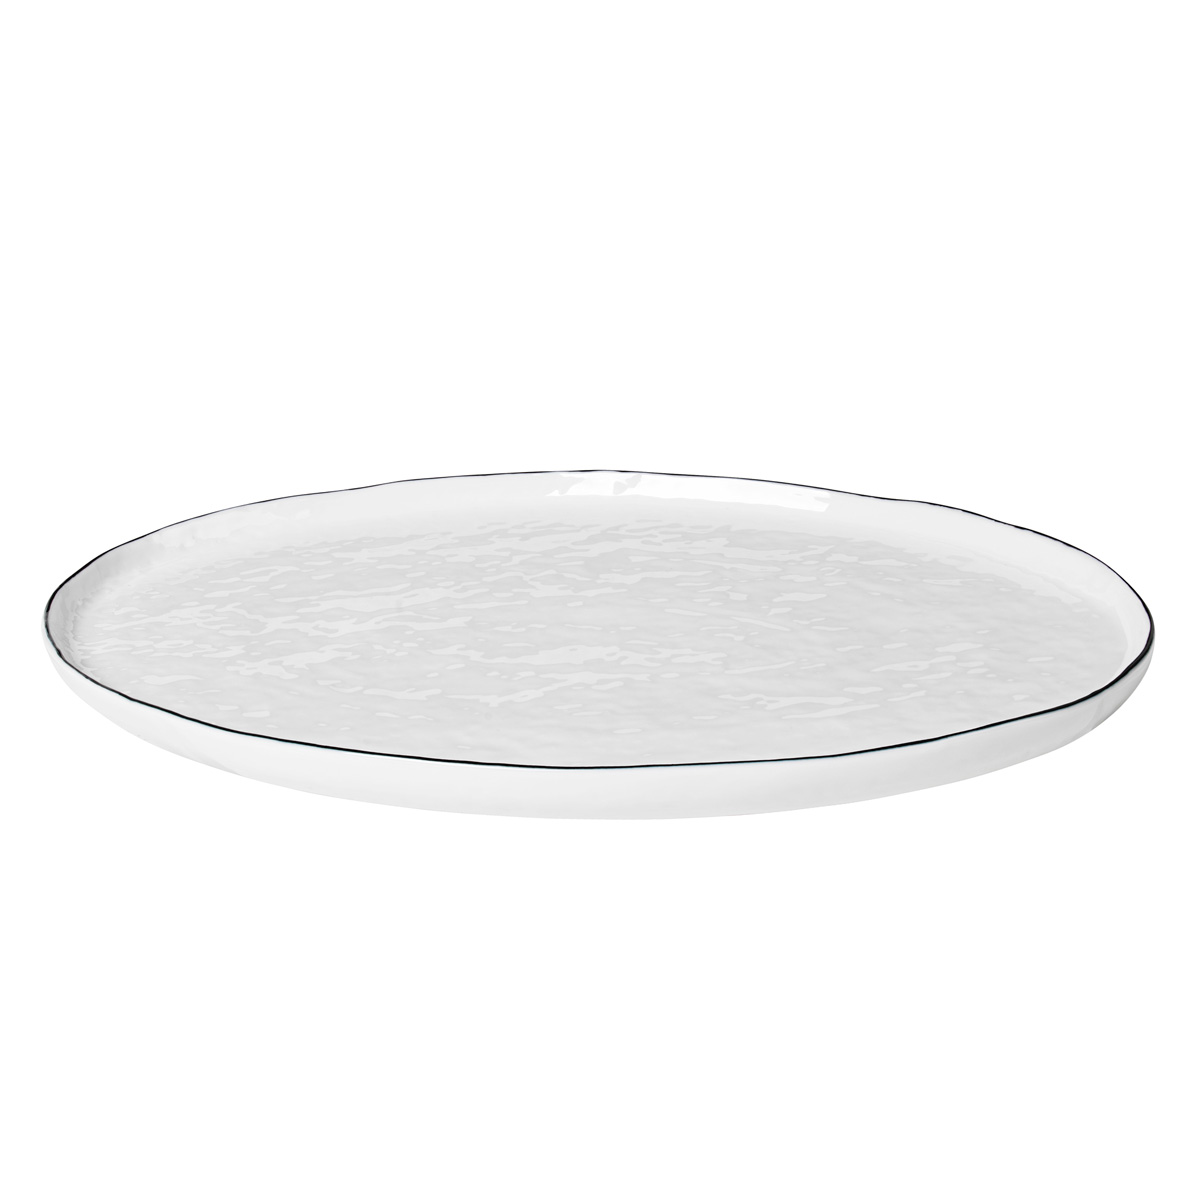 Broste-Salt-Oval-Plate-Large-14533194